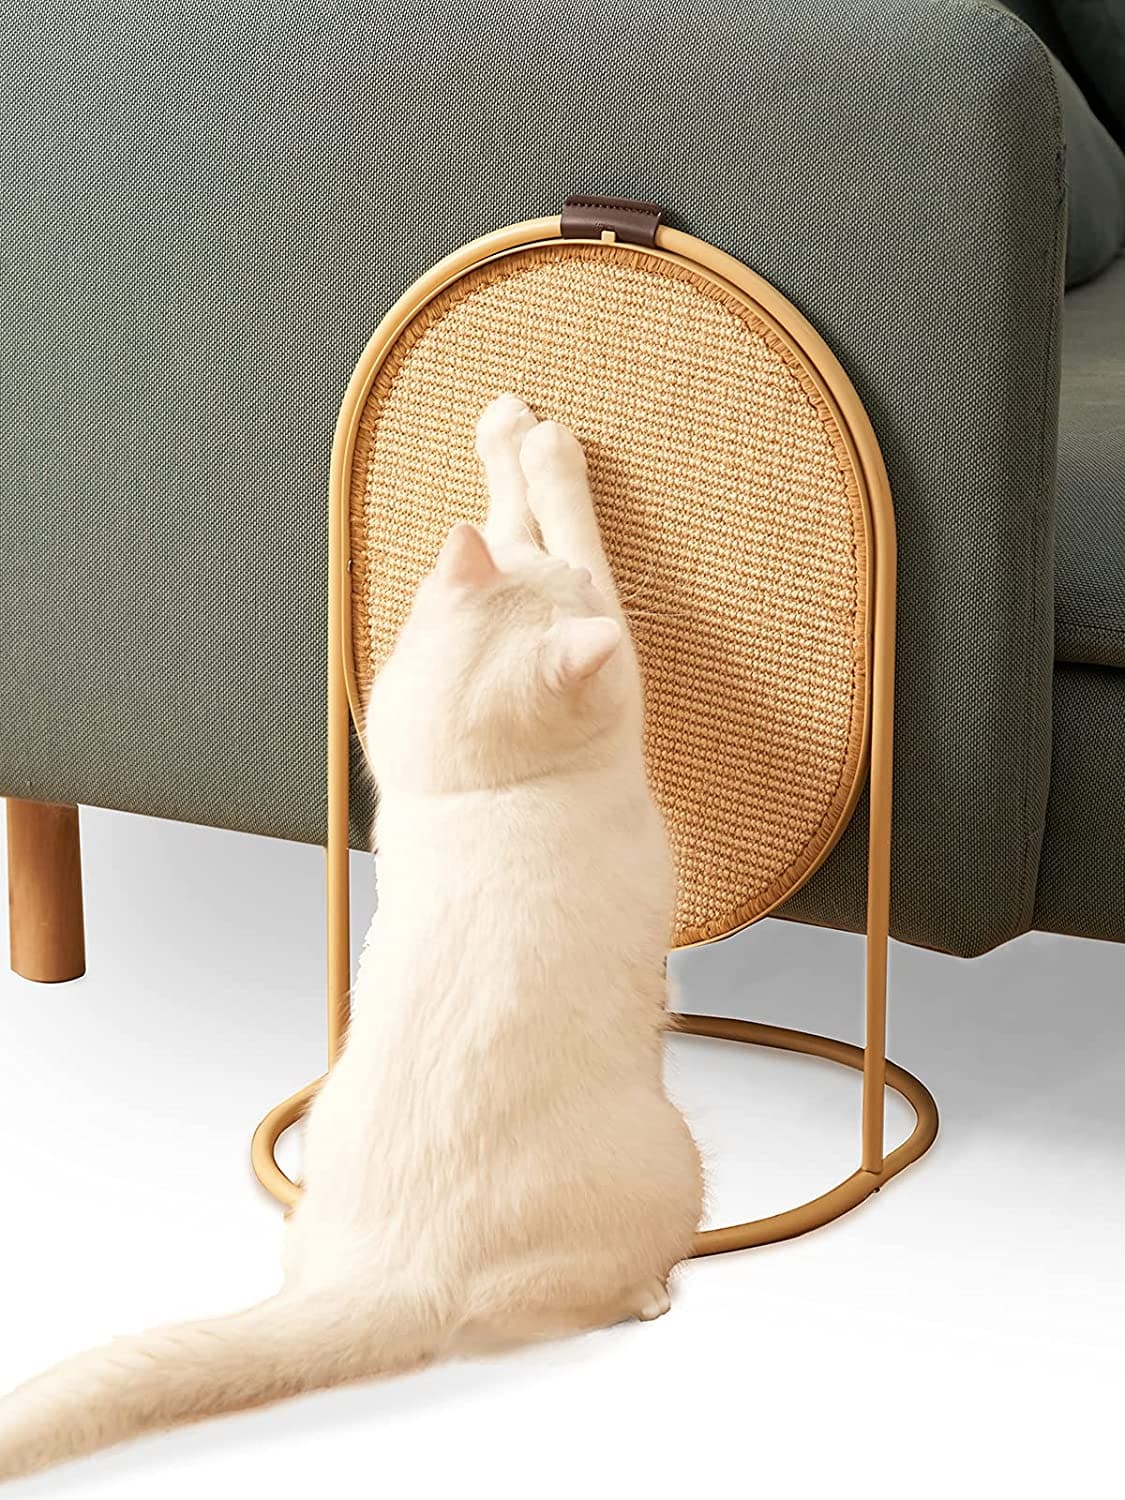 pet furniture 8 - 18 amazing pet furniture ideas that are perfect solutions for small spaces